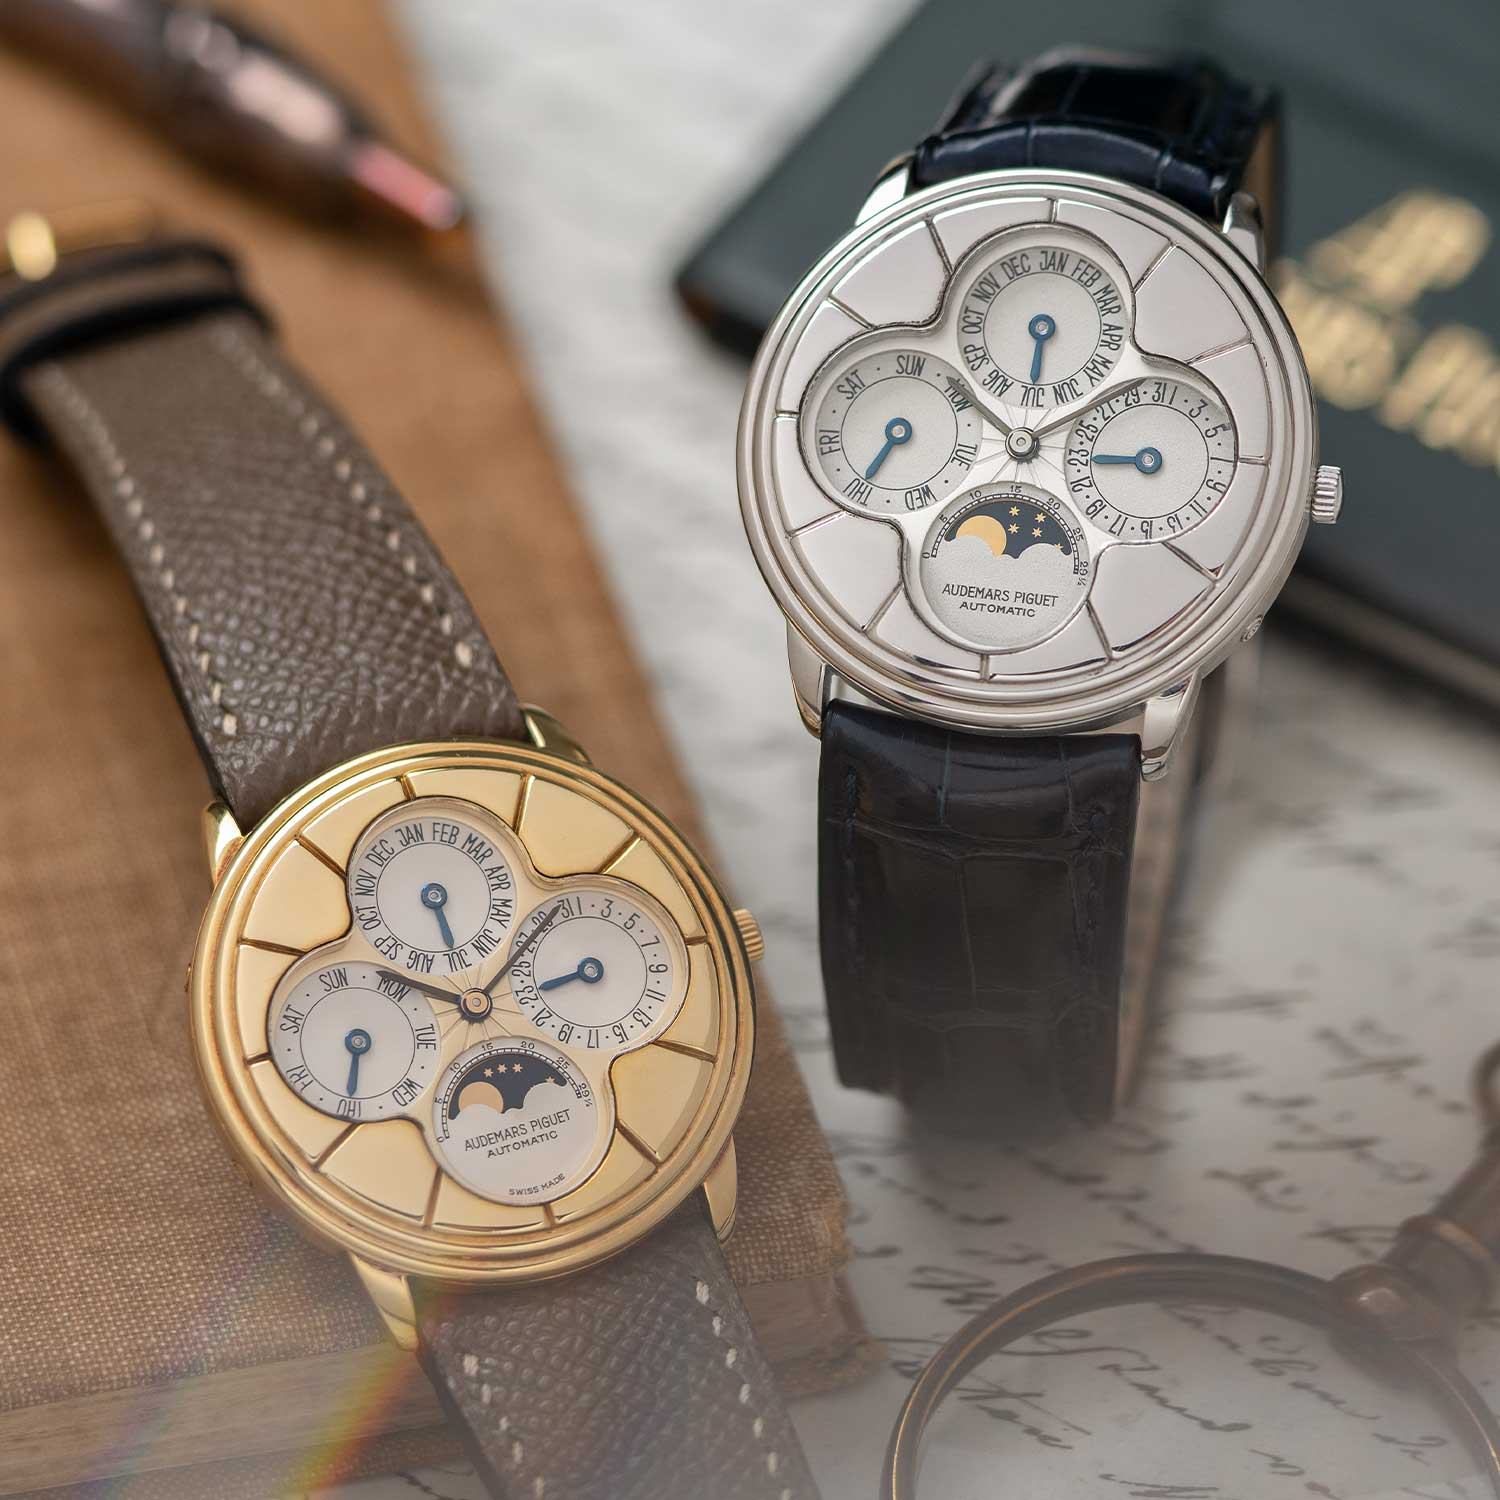 "The ""Clover"" Perpetual Calendars ref. 25681BA on the left in yellow gold and on the right in and the ref. 25681PT in platinum on the right; the watches seen here are presently part of the Pygmalion Gallery's private collection (Image: Photo and watches, property of Pygmalion Gallery)"